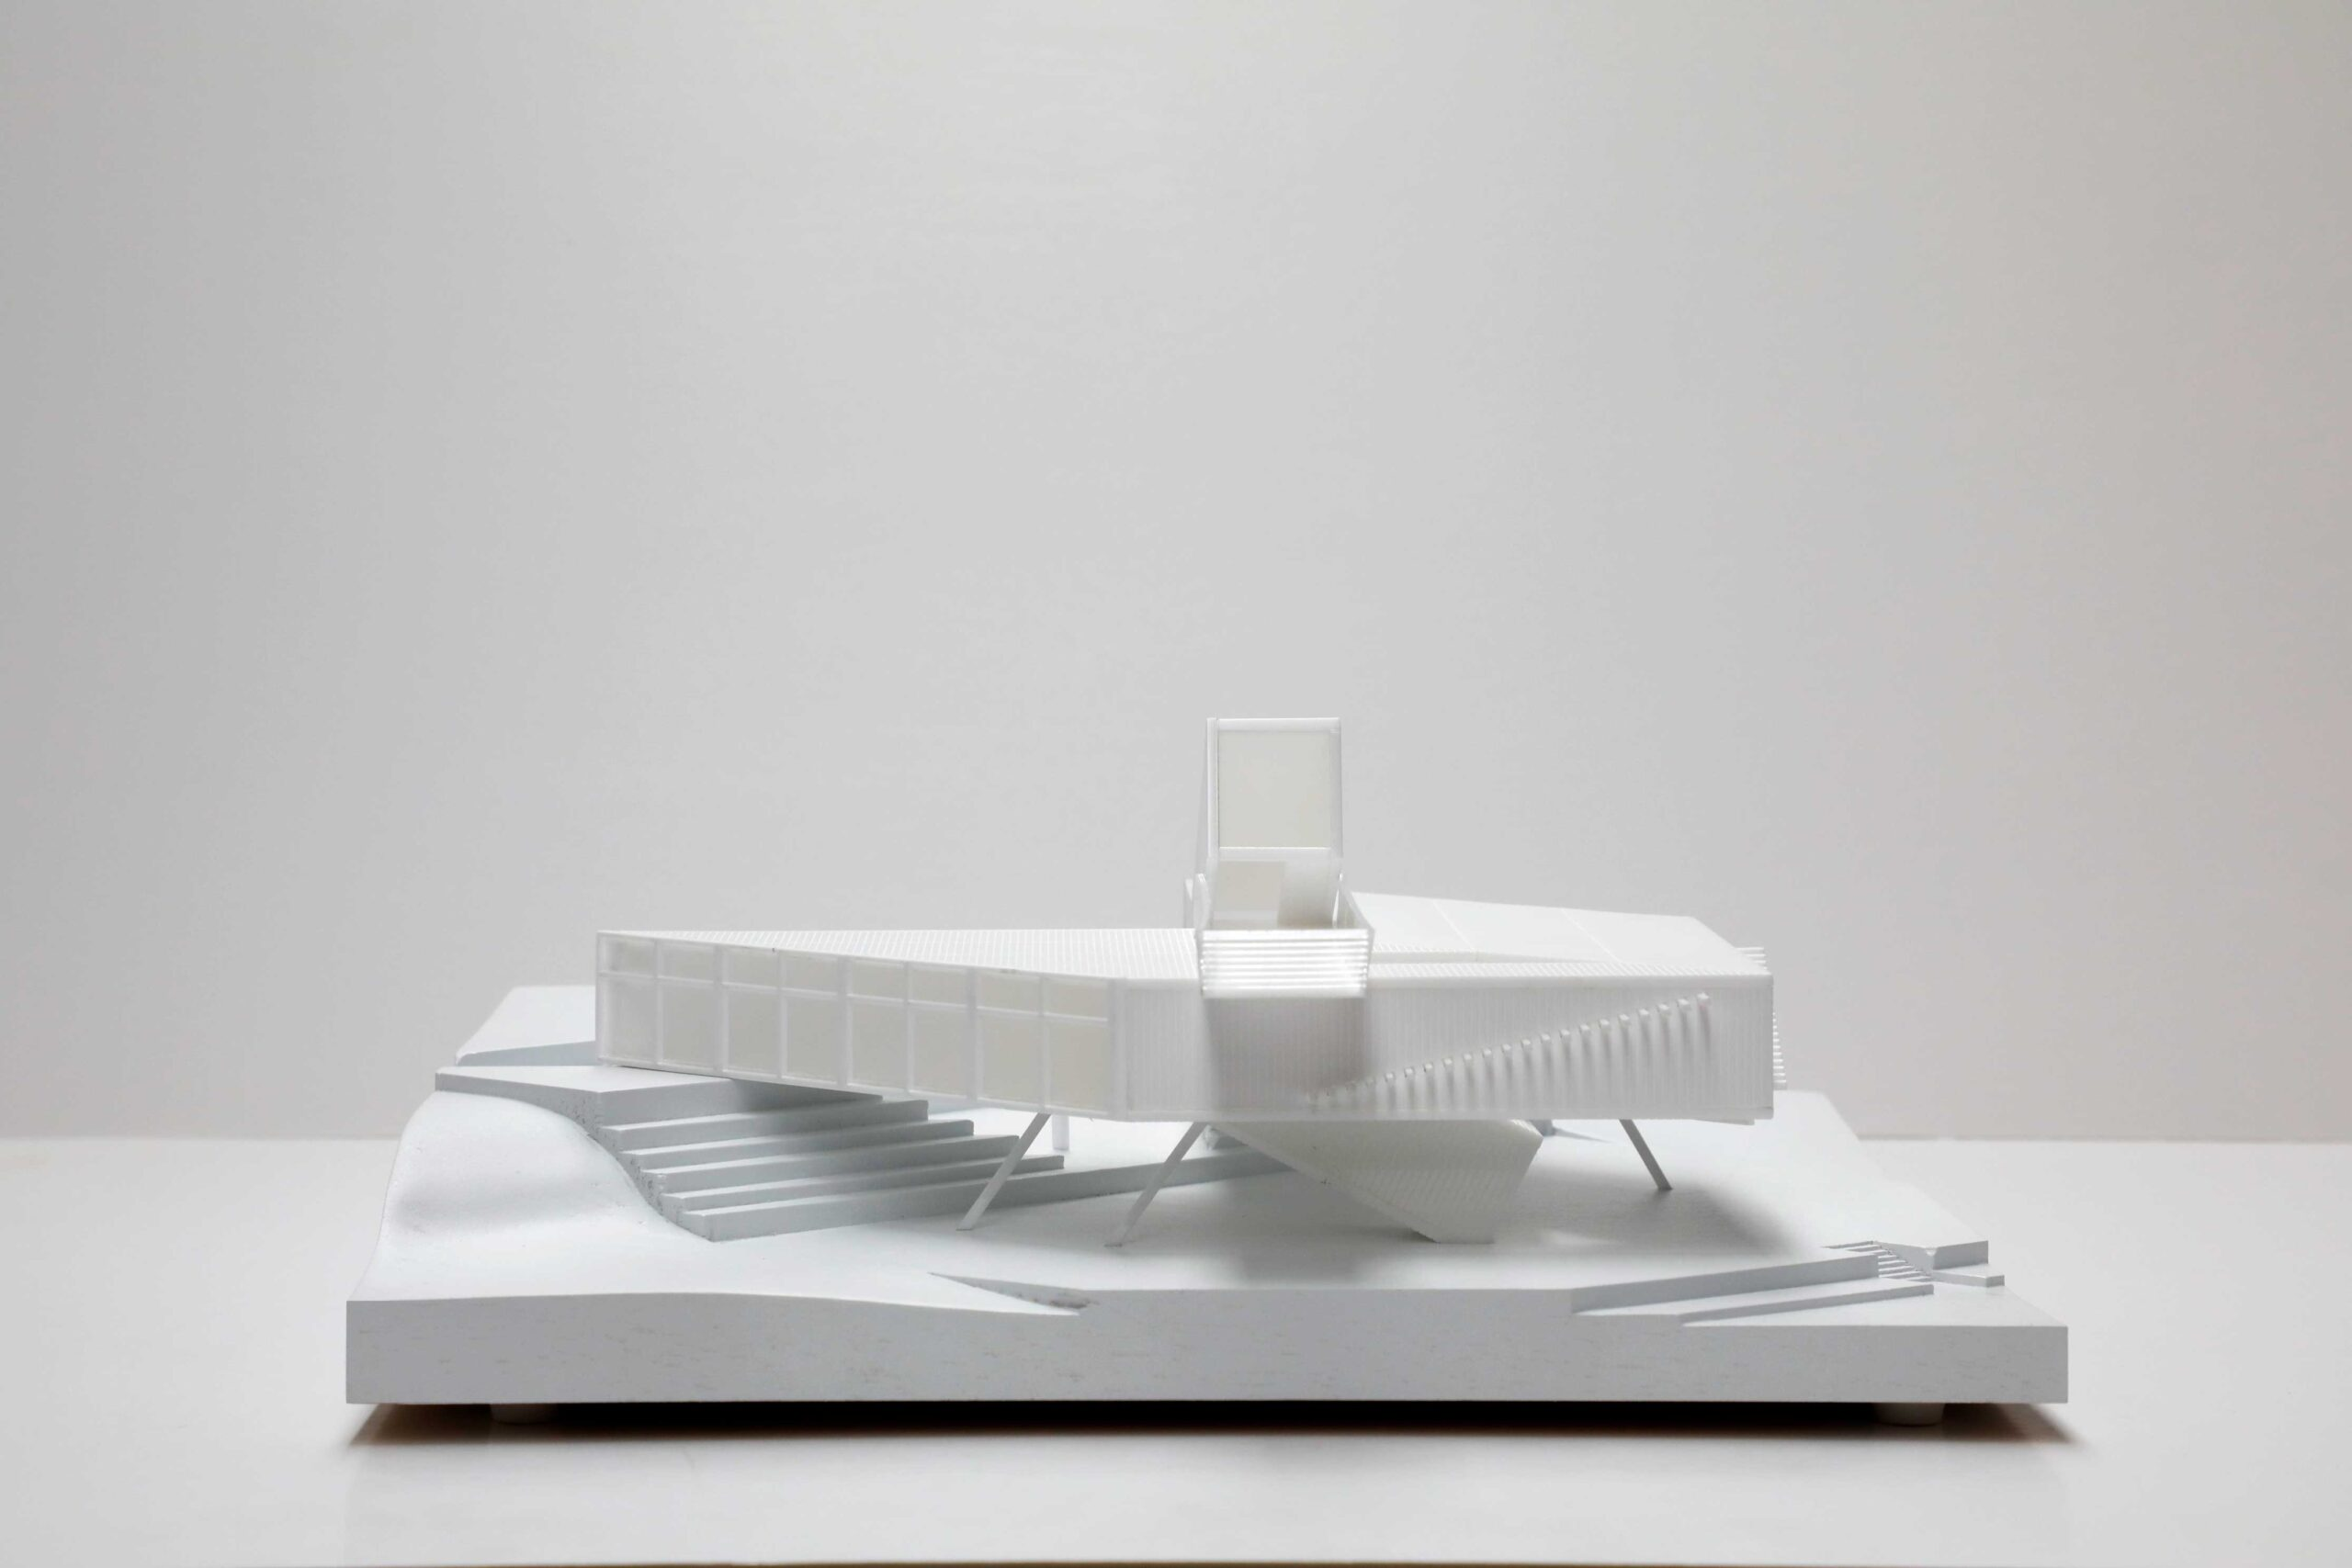 White architectural model exhibition for the National Maritime Mueseum